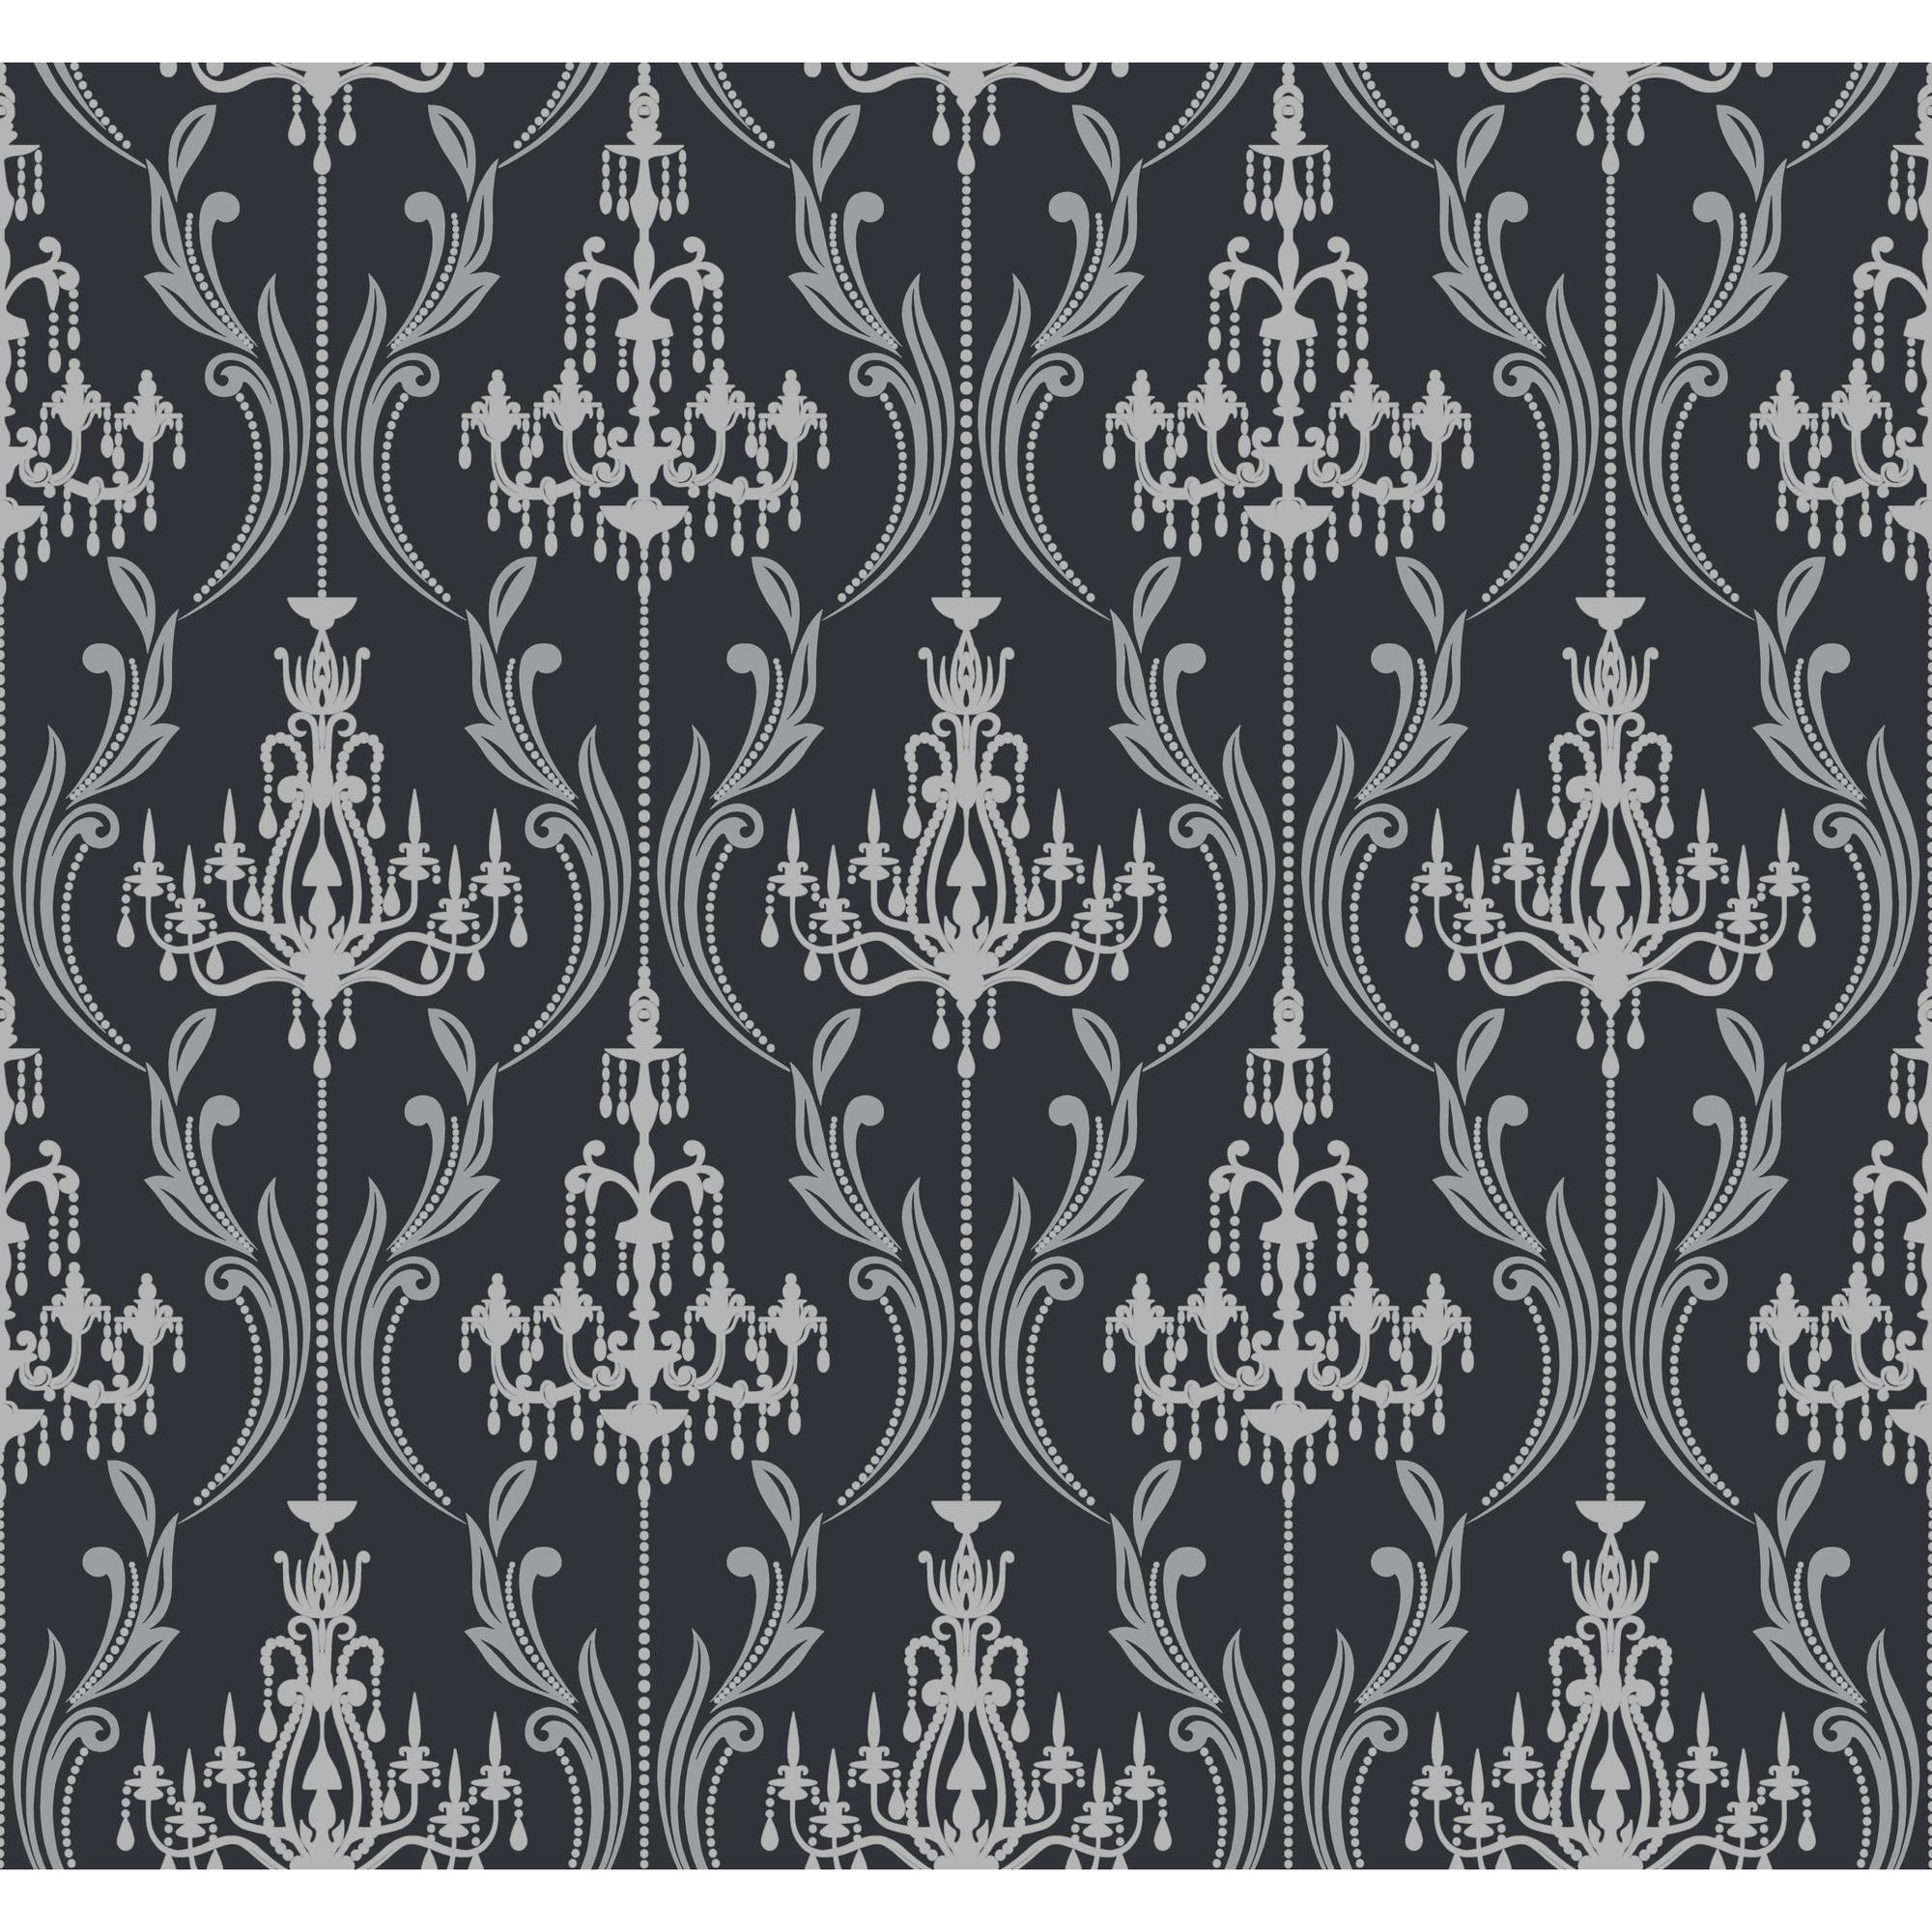 Black & White Chandelier Damask Wallpaper